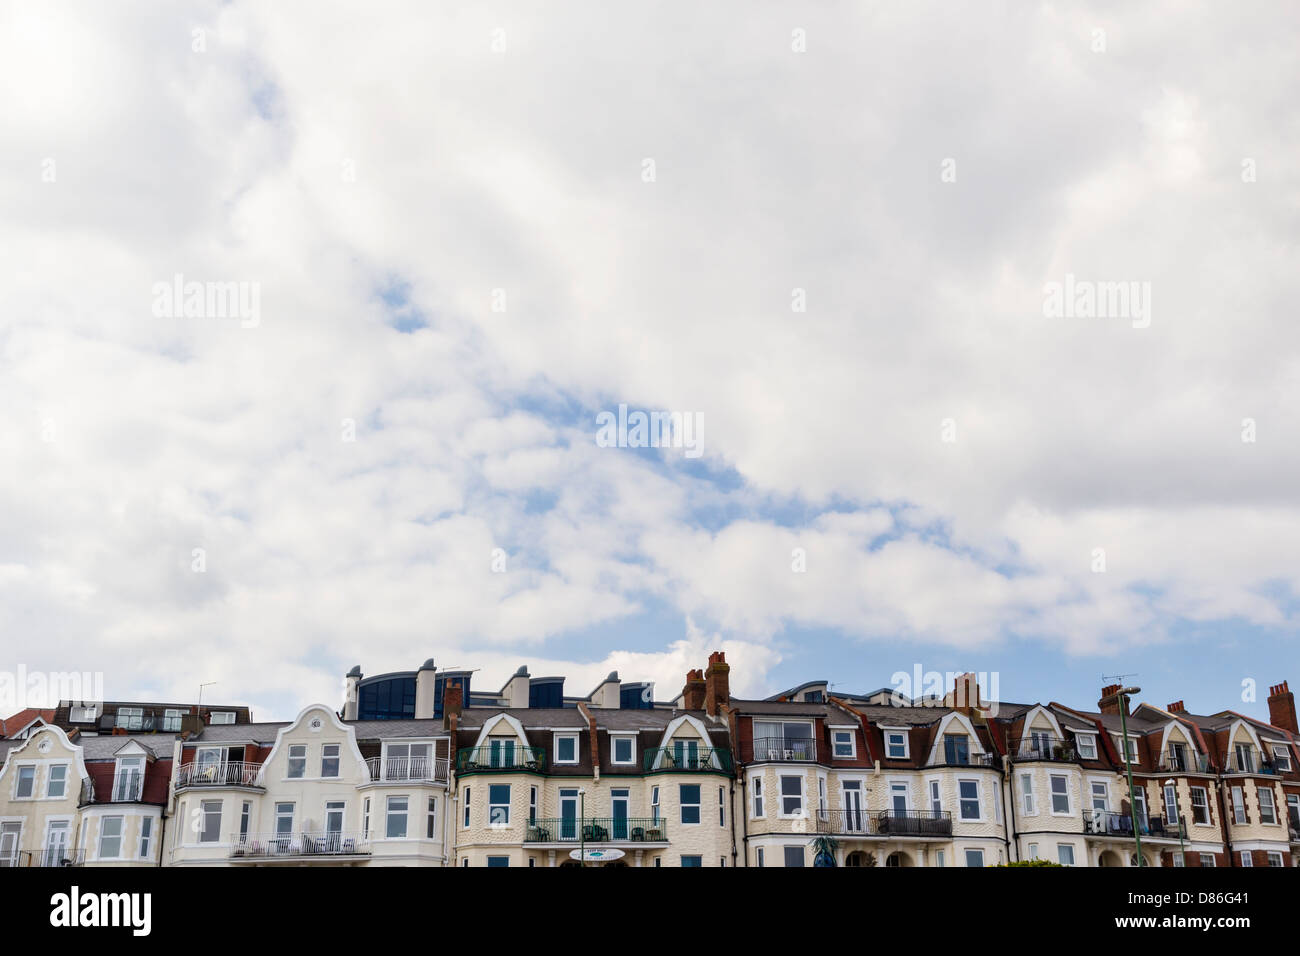 Row of rooftops of Guest Houses in Boscombe, Bournemouth - Stock Image